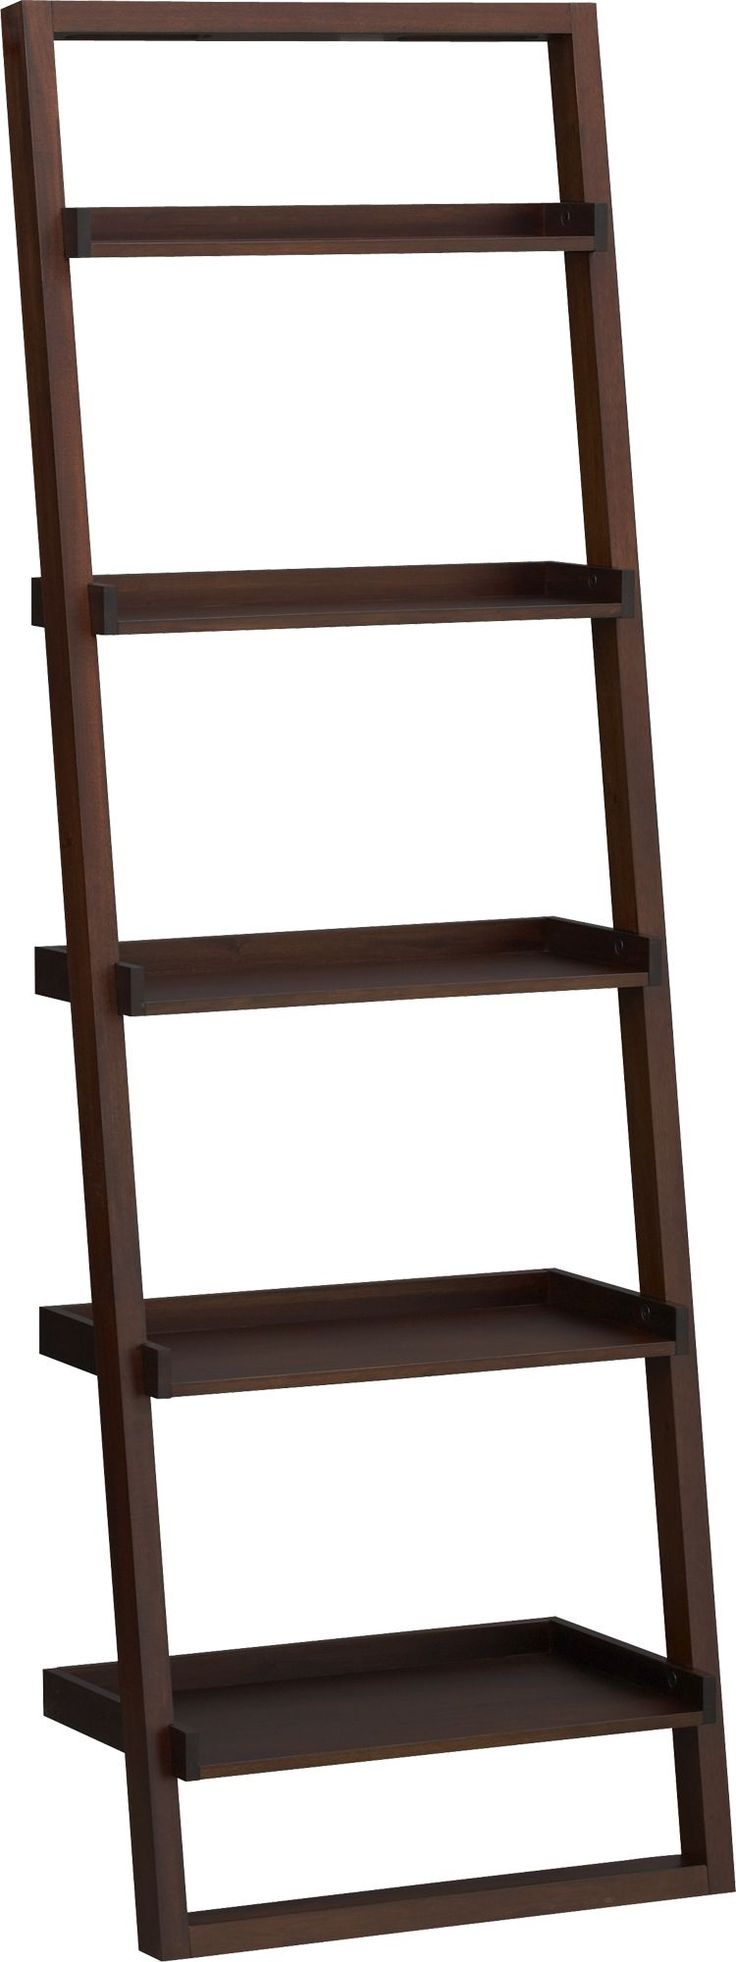 Sloane Java 25 5 Leaning Bookcase Crate And Barrel 129